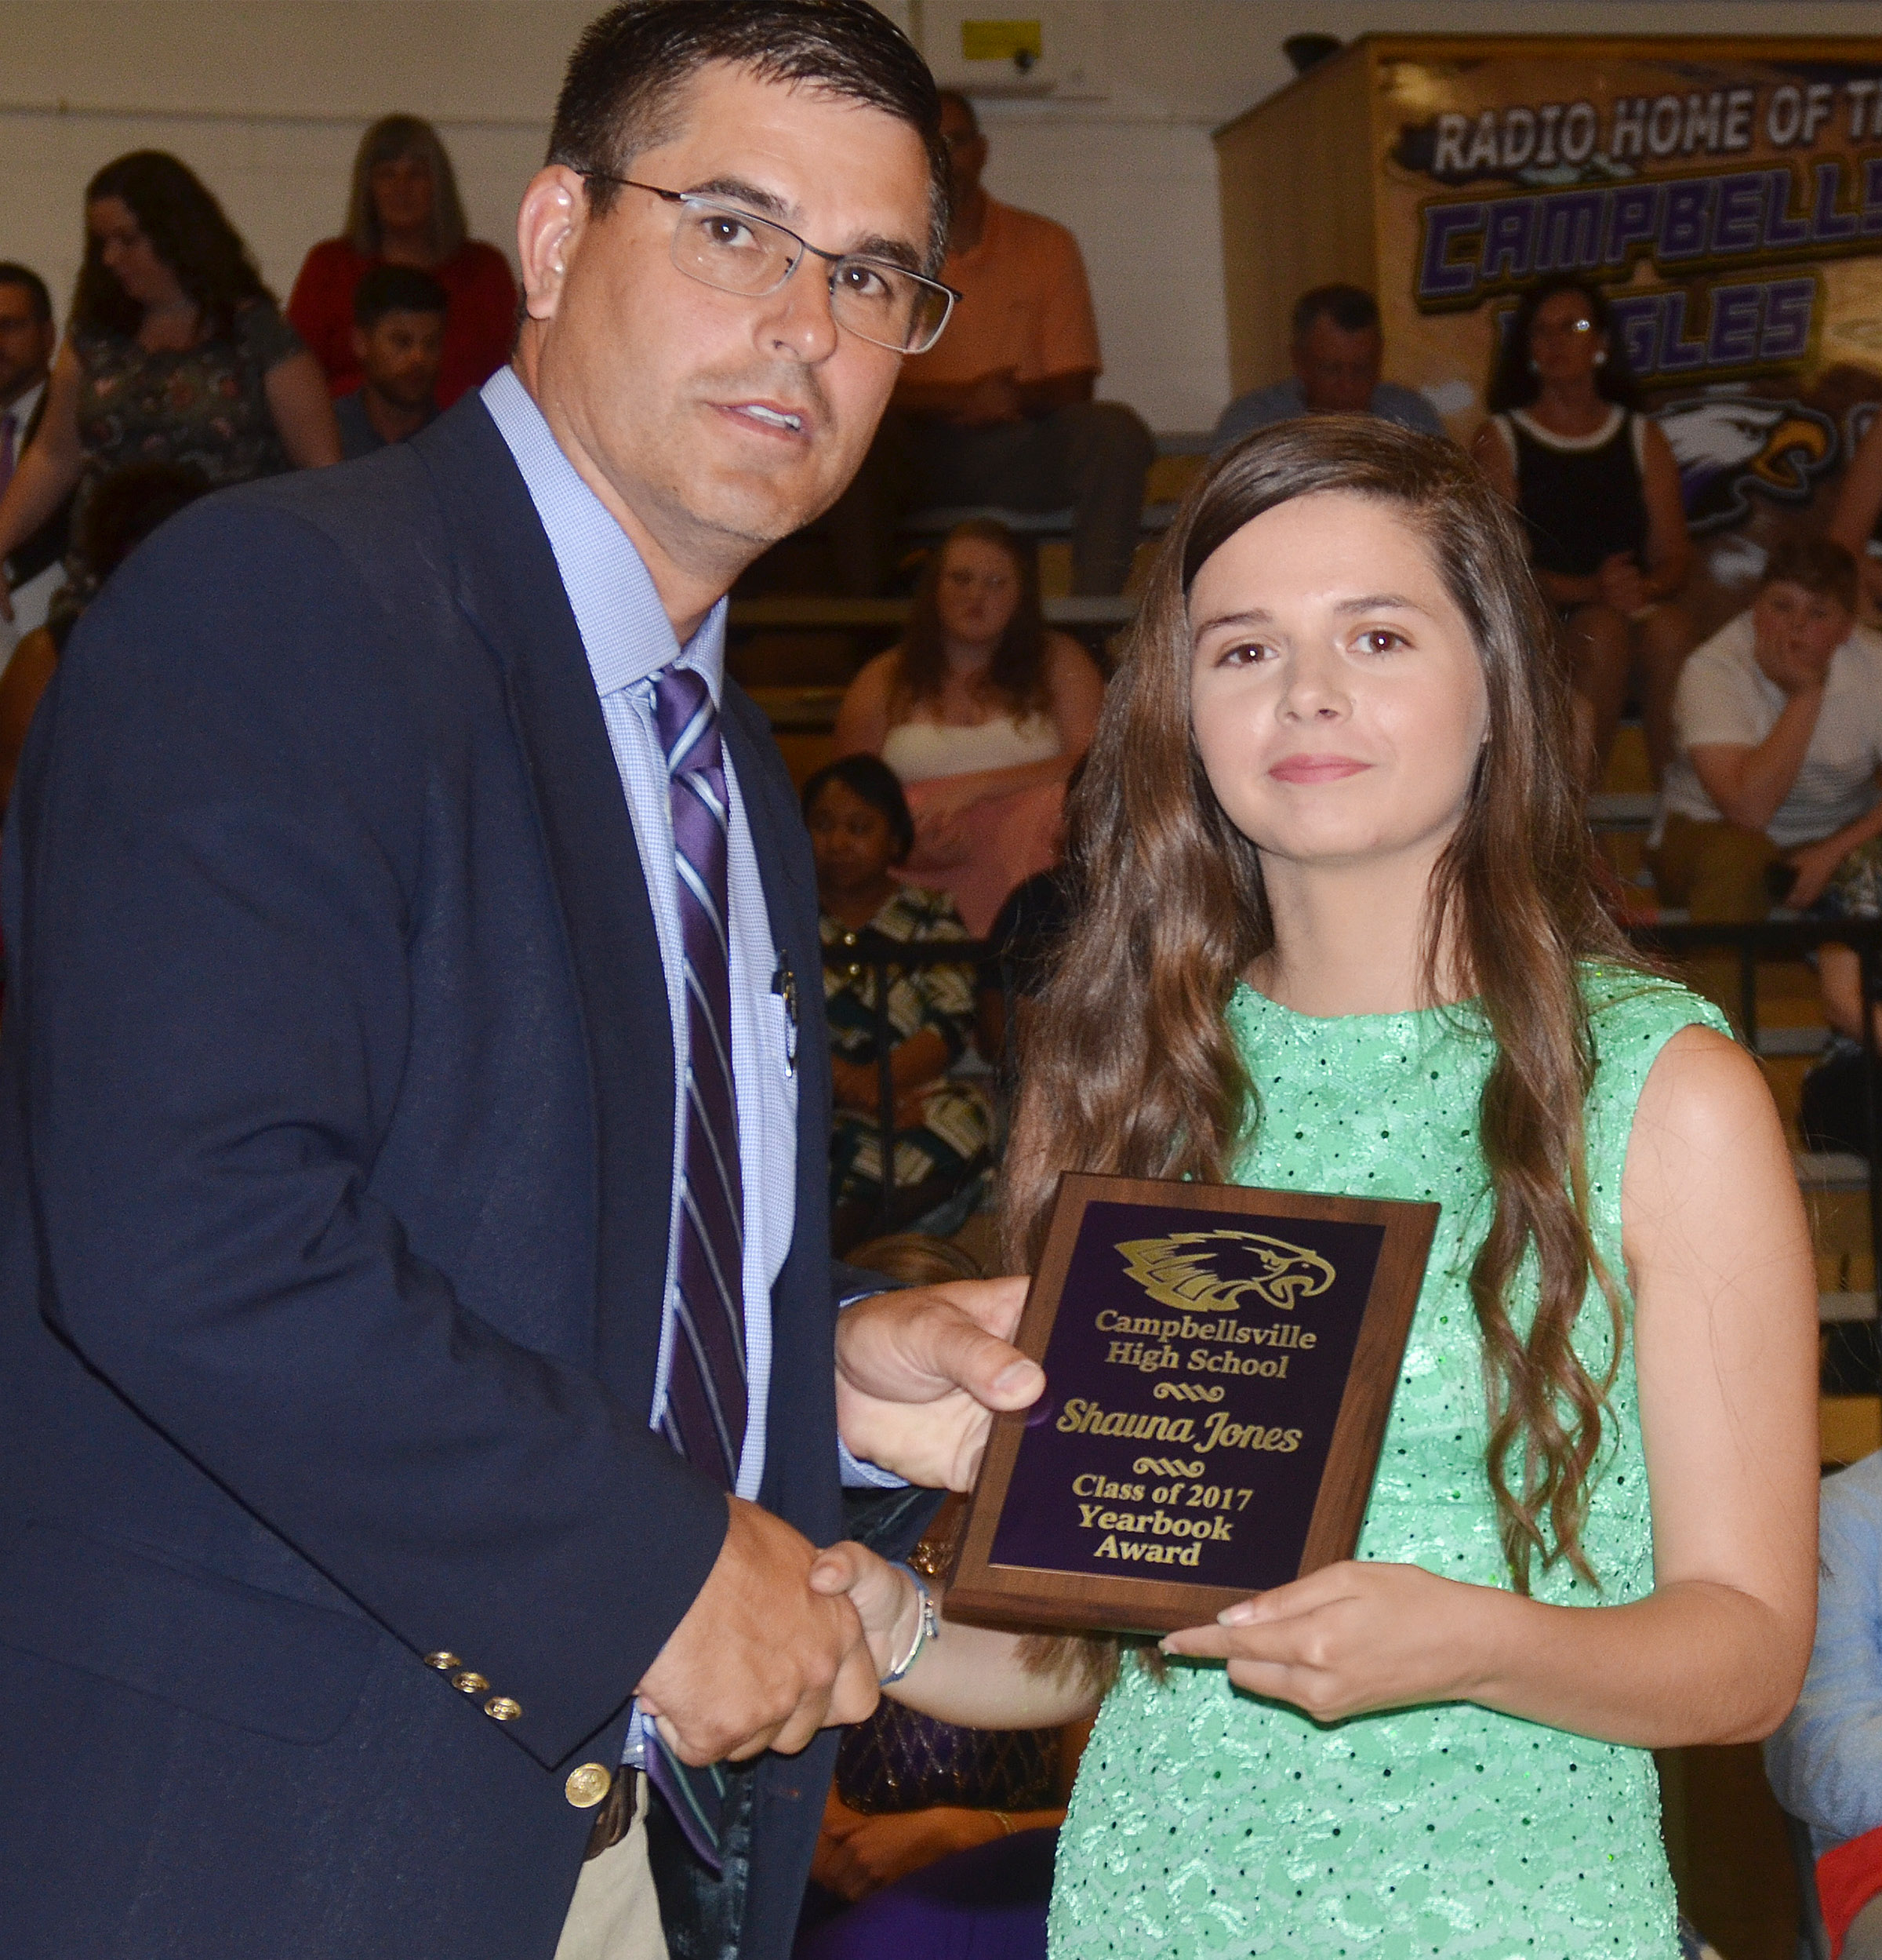 Shauna Jones receives the yearbook award. She is pictured with Principal Kirby Smith.